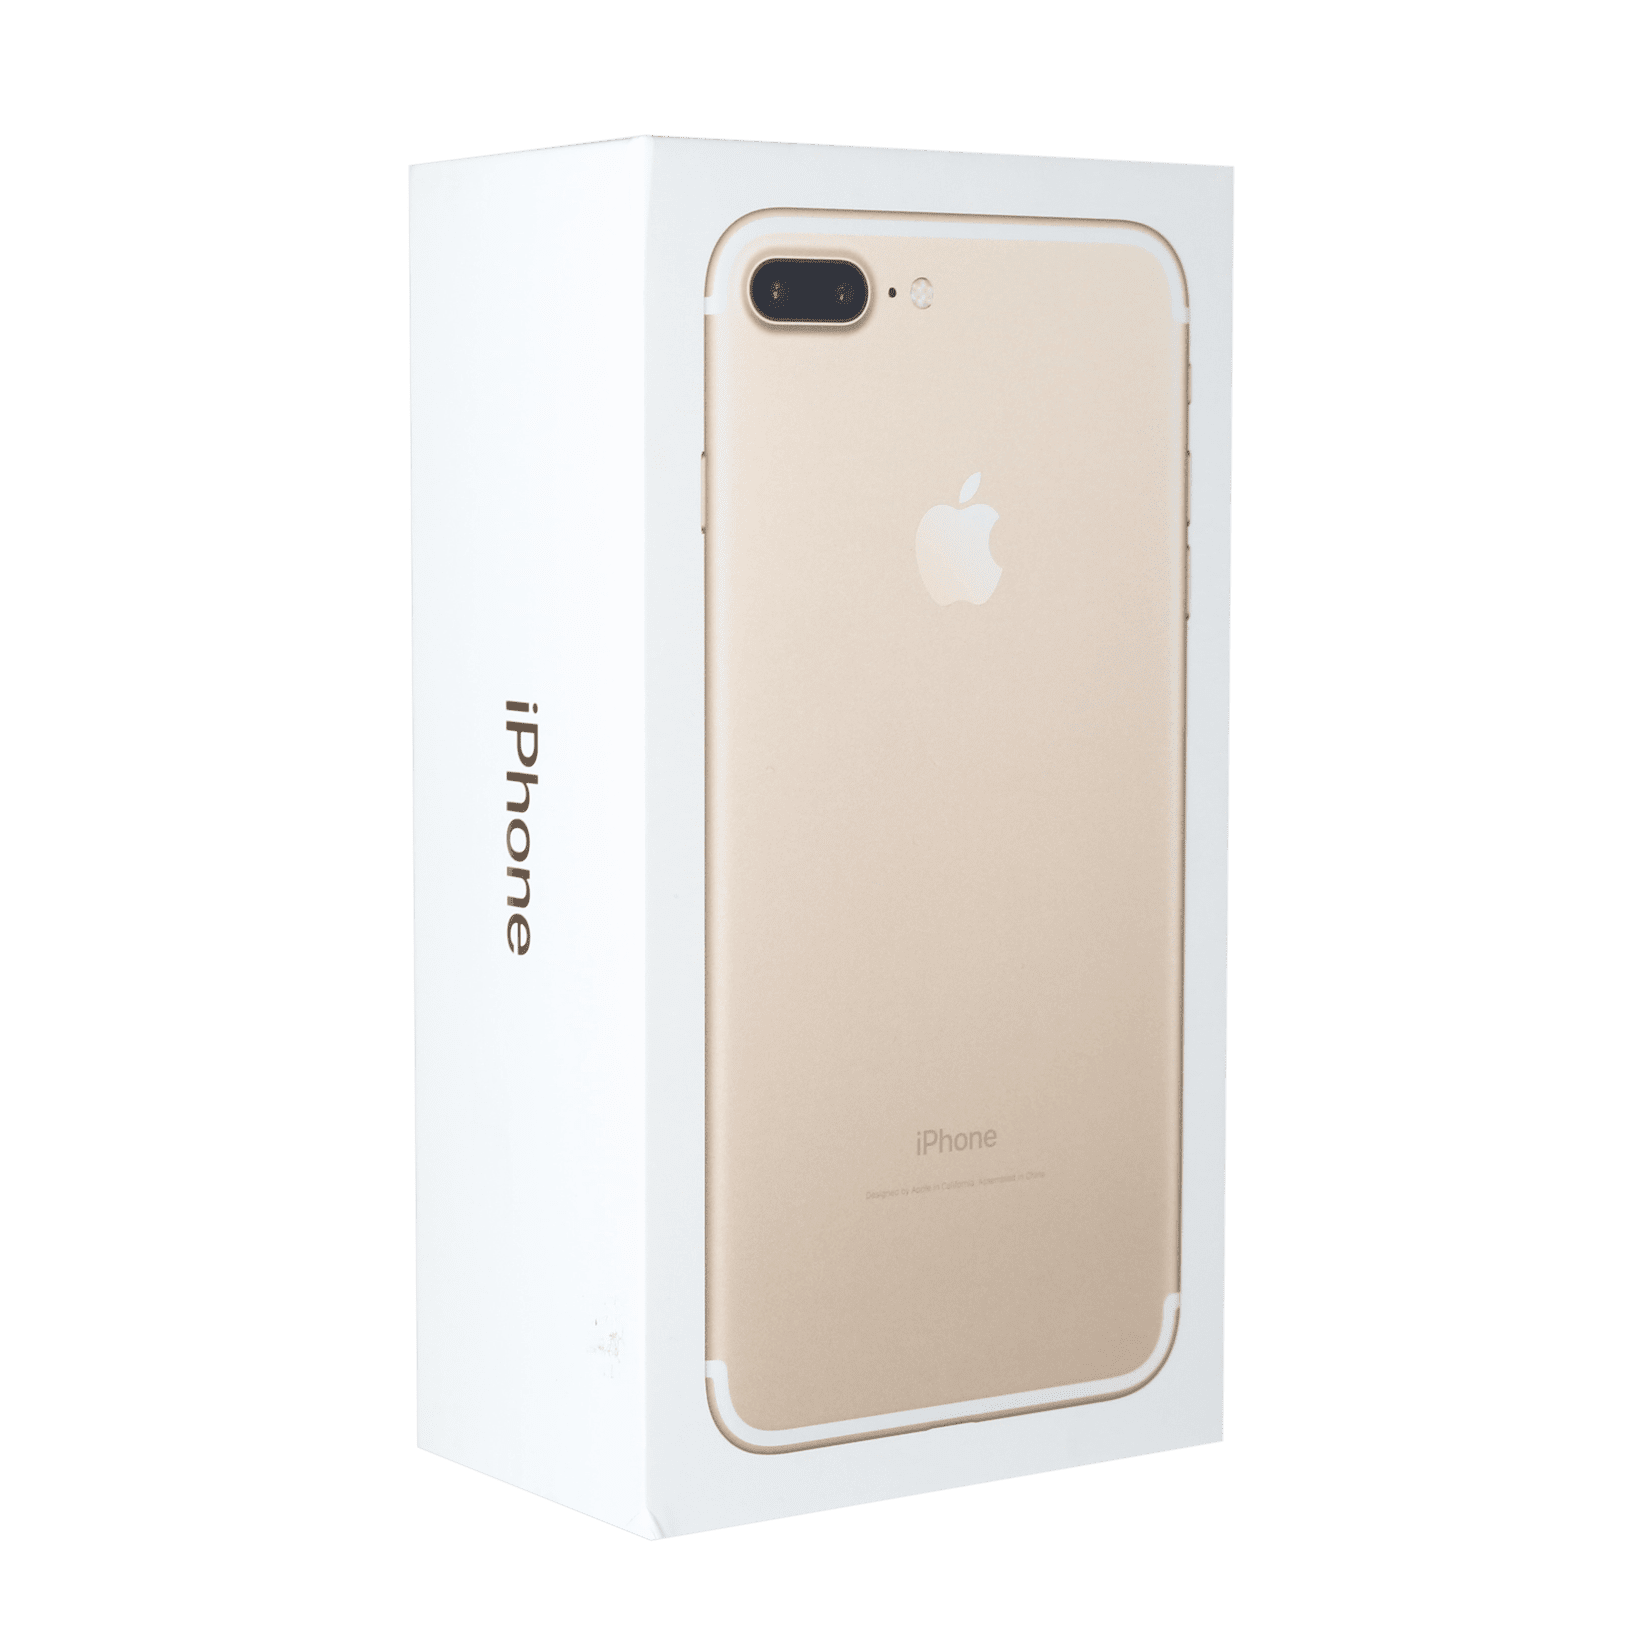 Iphone 7Plus Box with Original Accessories